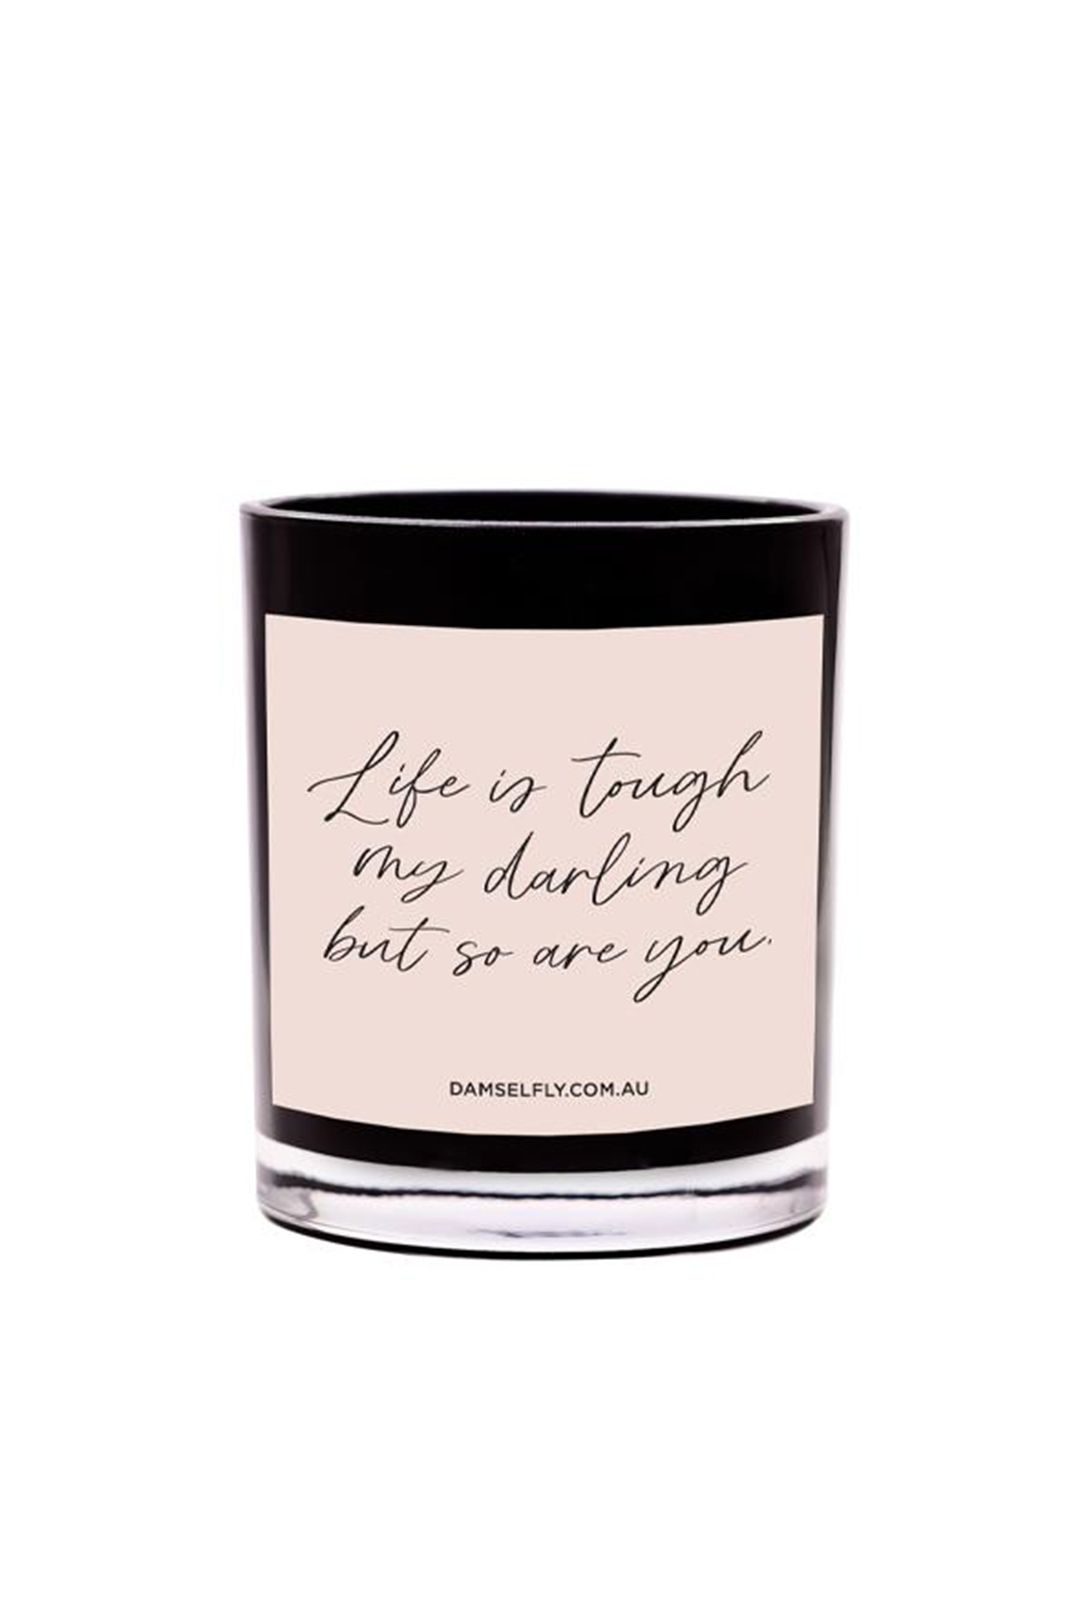 damselfly-collective-life-is-tough-large-candle-front